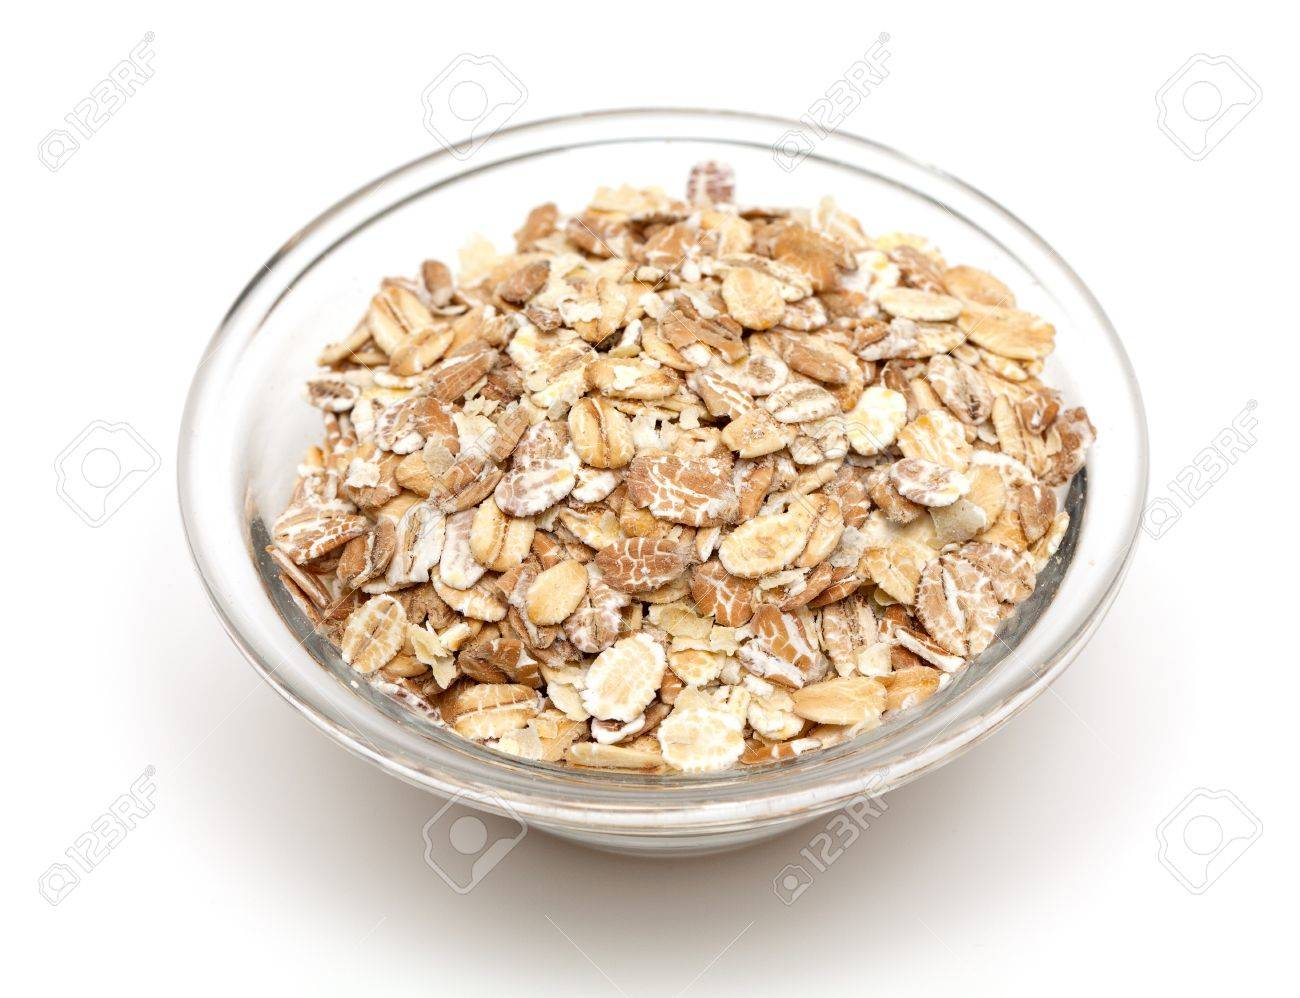 oat flakes in a glass bowl isolated on white backrgound Stock Photo - 18566535